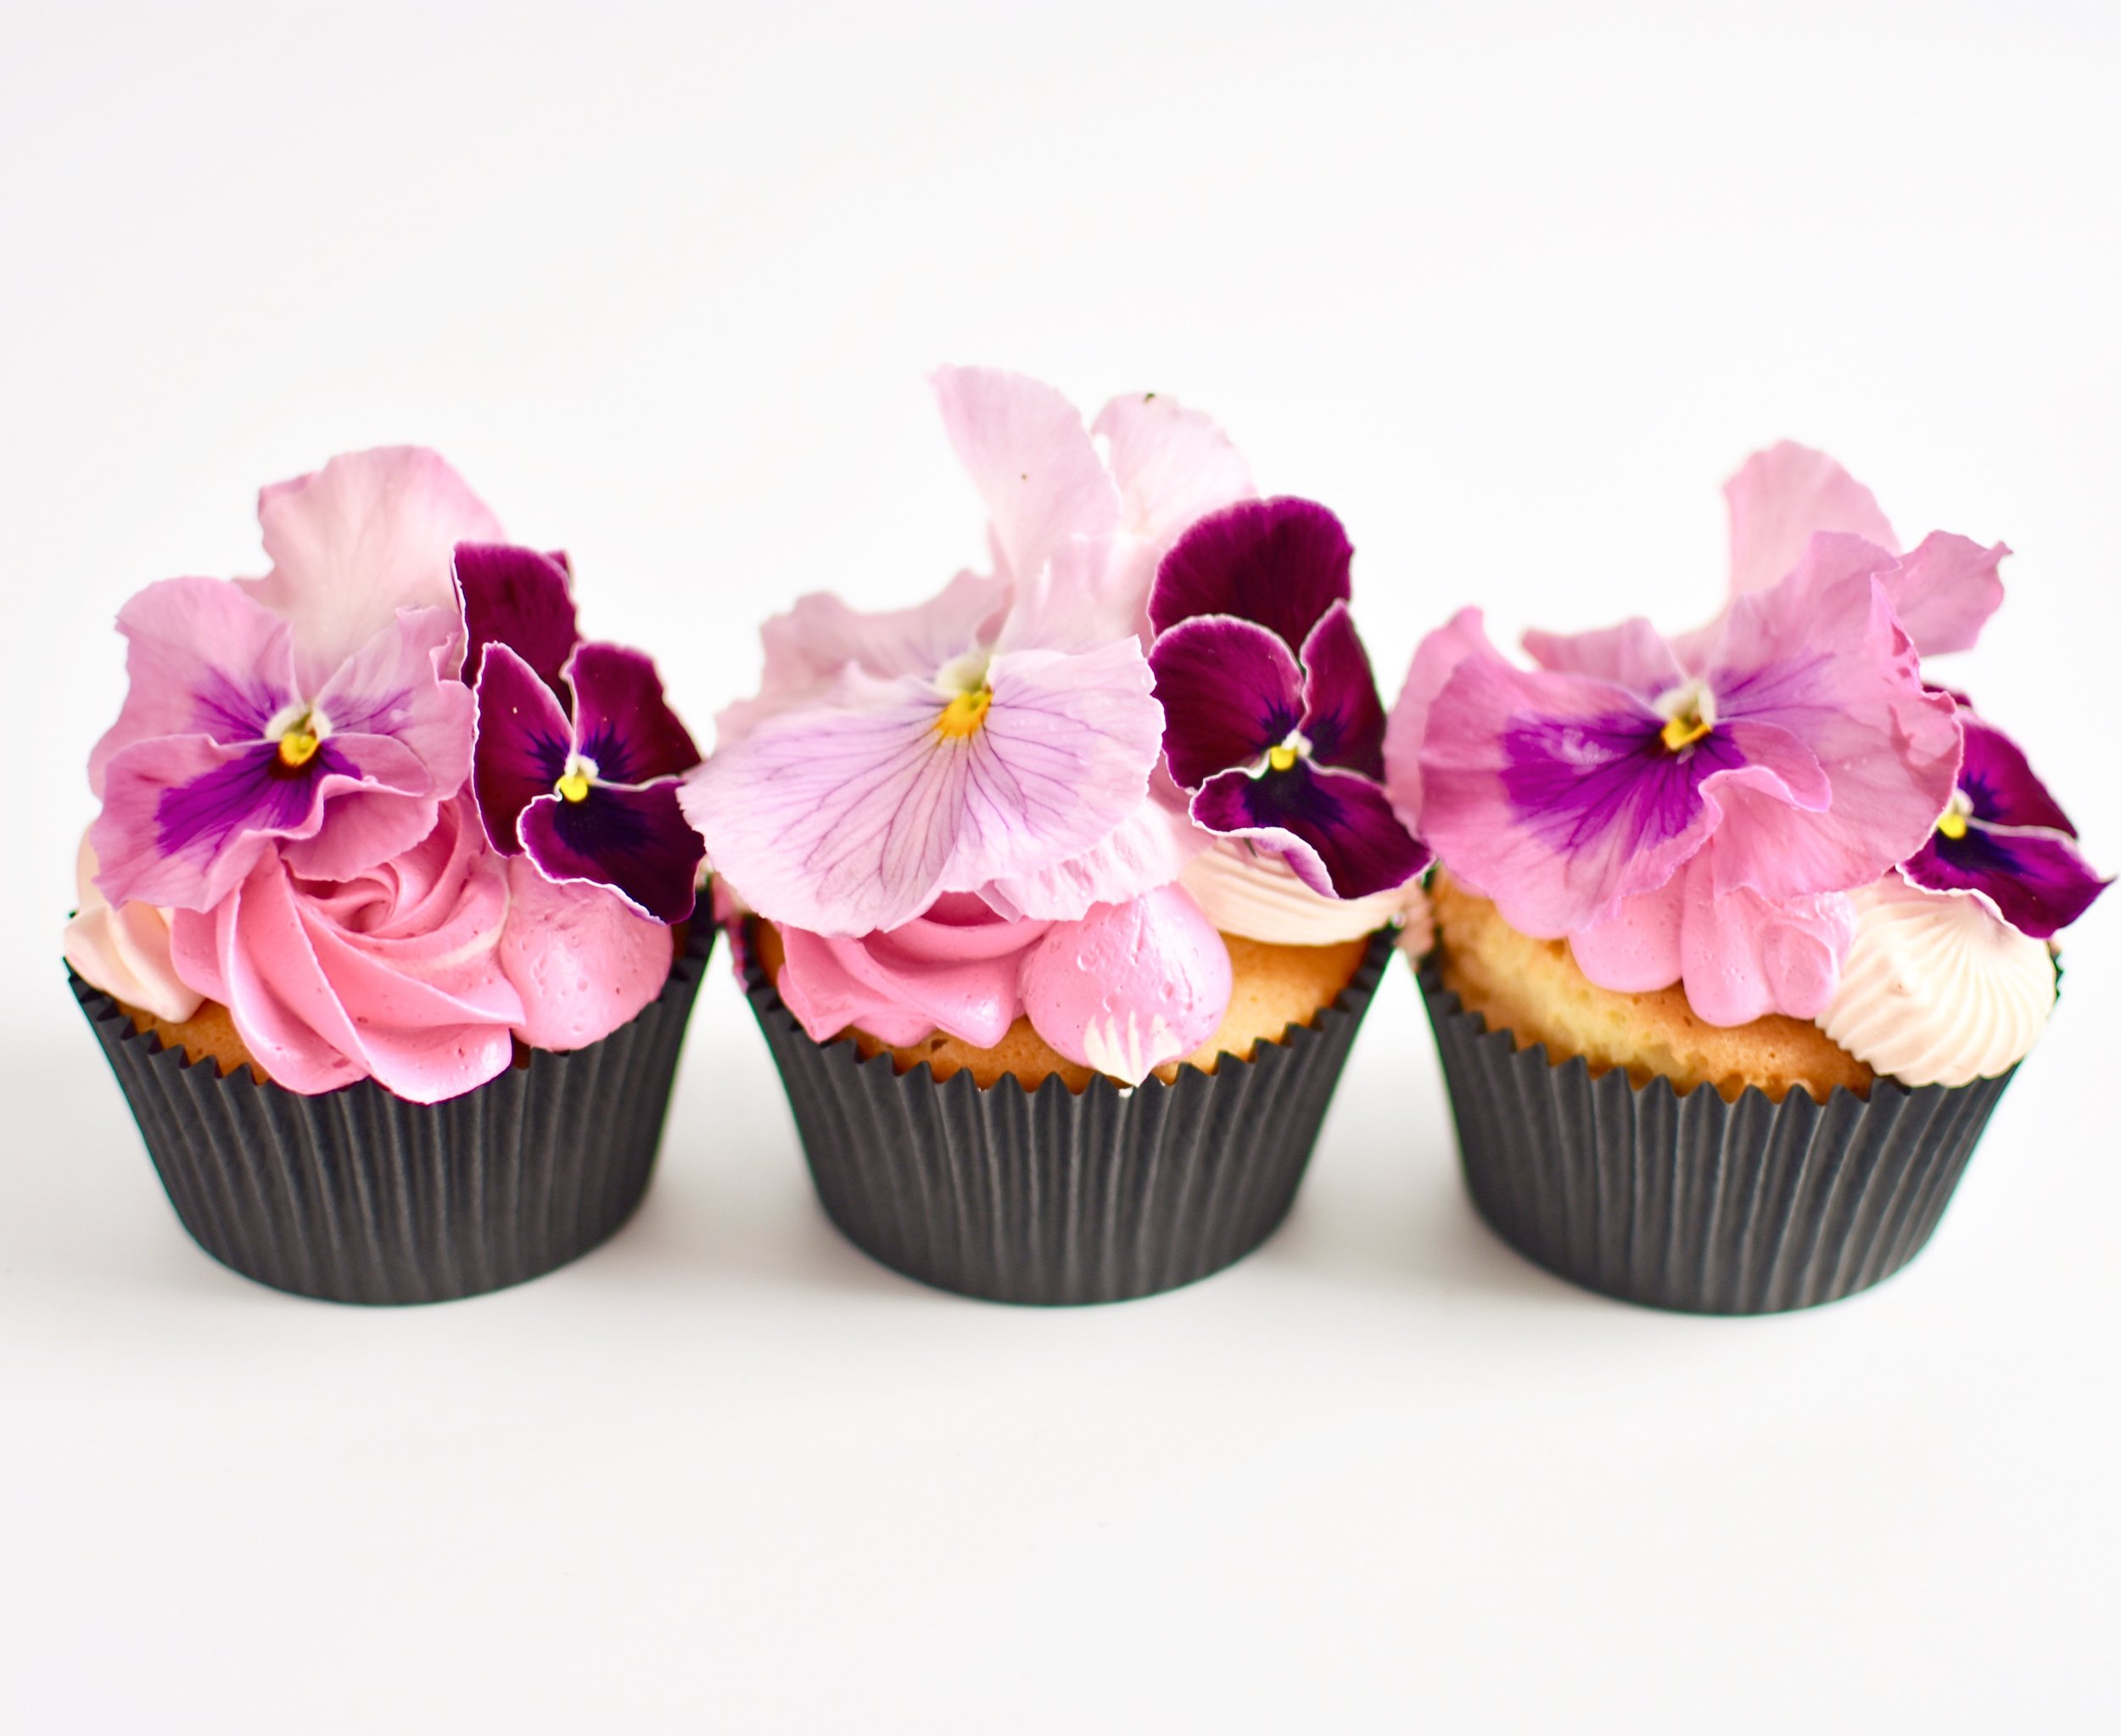 STANDARD SIZE EDIBLE FLOWER CUPCAKES  From: $4.50 each  Minimum Order Quantity : 12 Per Flavour